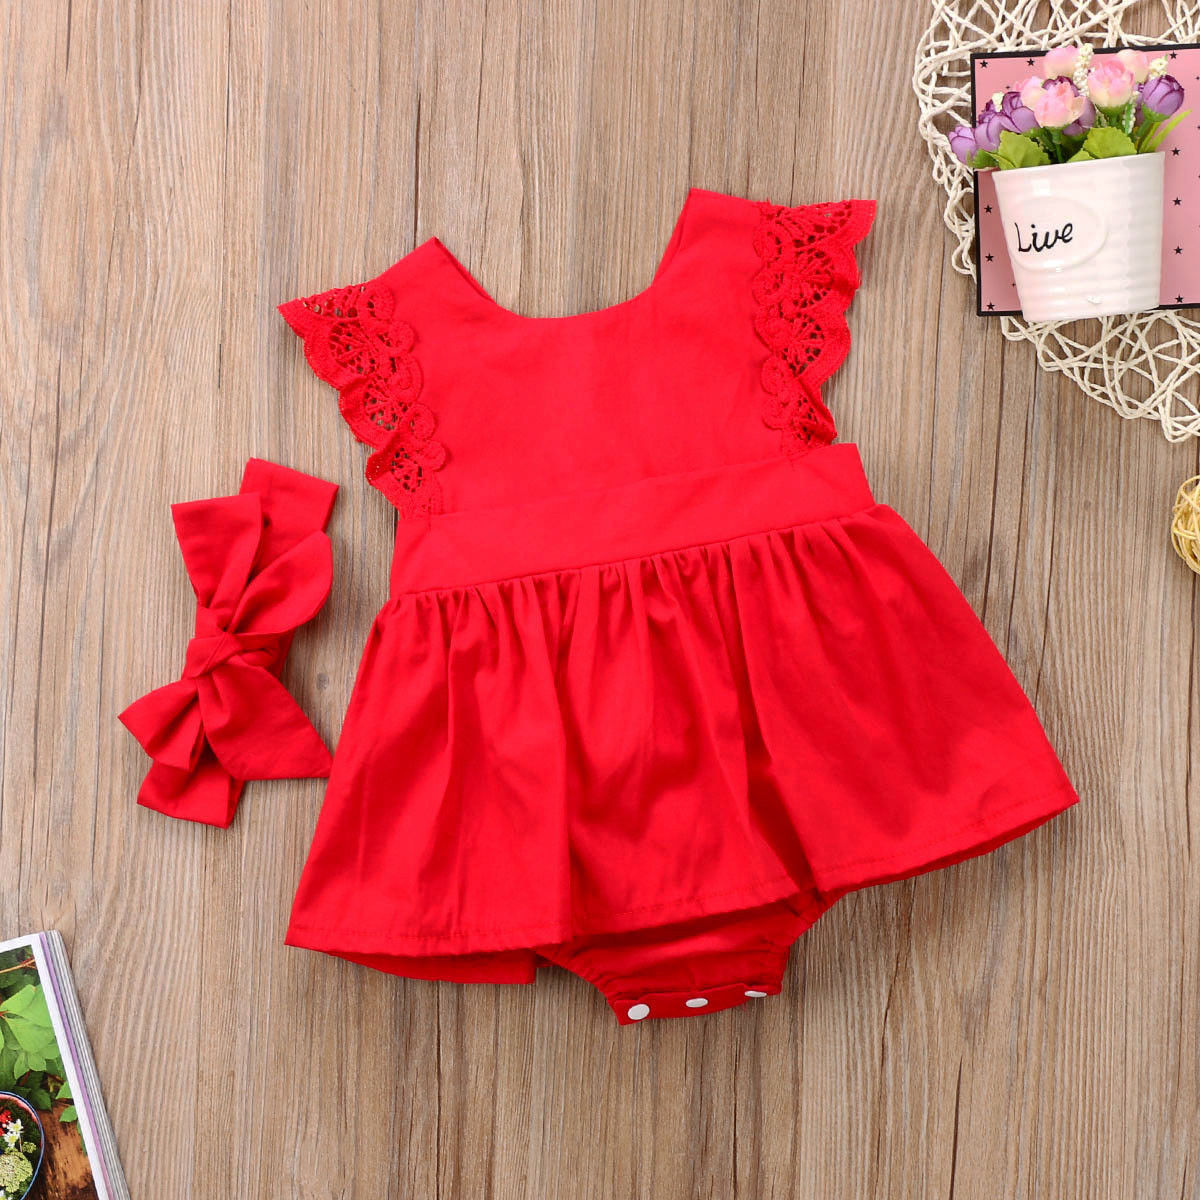 Summer Cotton kids Girl Lace Ruffled Romper Bodysuit Hair Band party Clothes